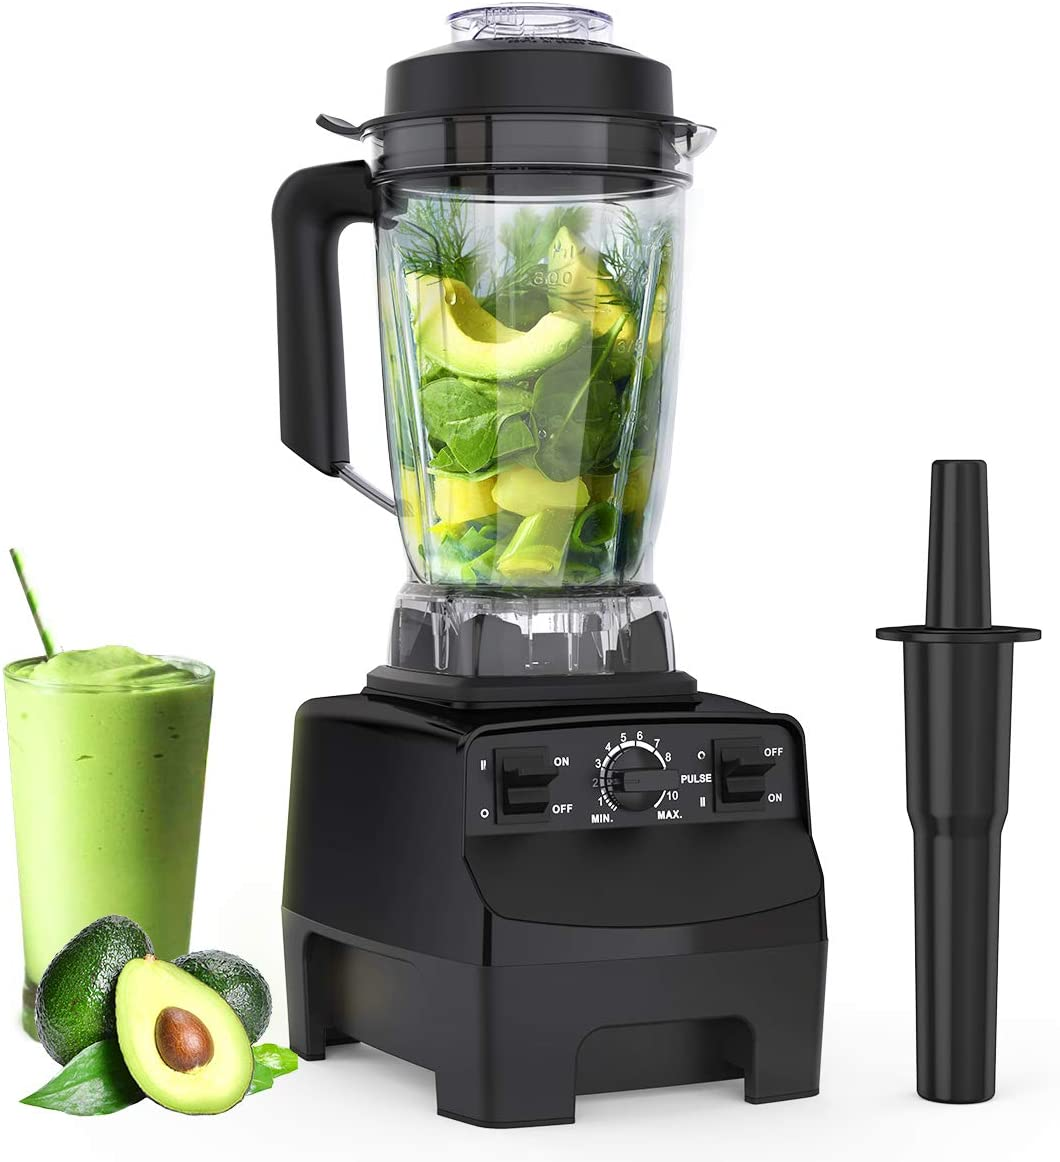 Homgeek, 1450W CACAGOO Countertop Blender for shakes and smoothies with 68 Oz BPA Free Tritan Container, Smoothie Blender Built-in Pulse for Kitchen, Crushing Ice, Frozen Dessert